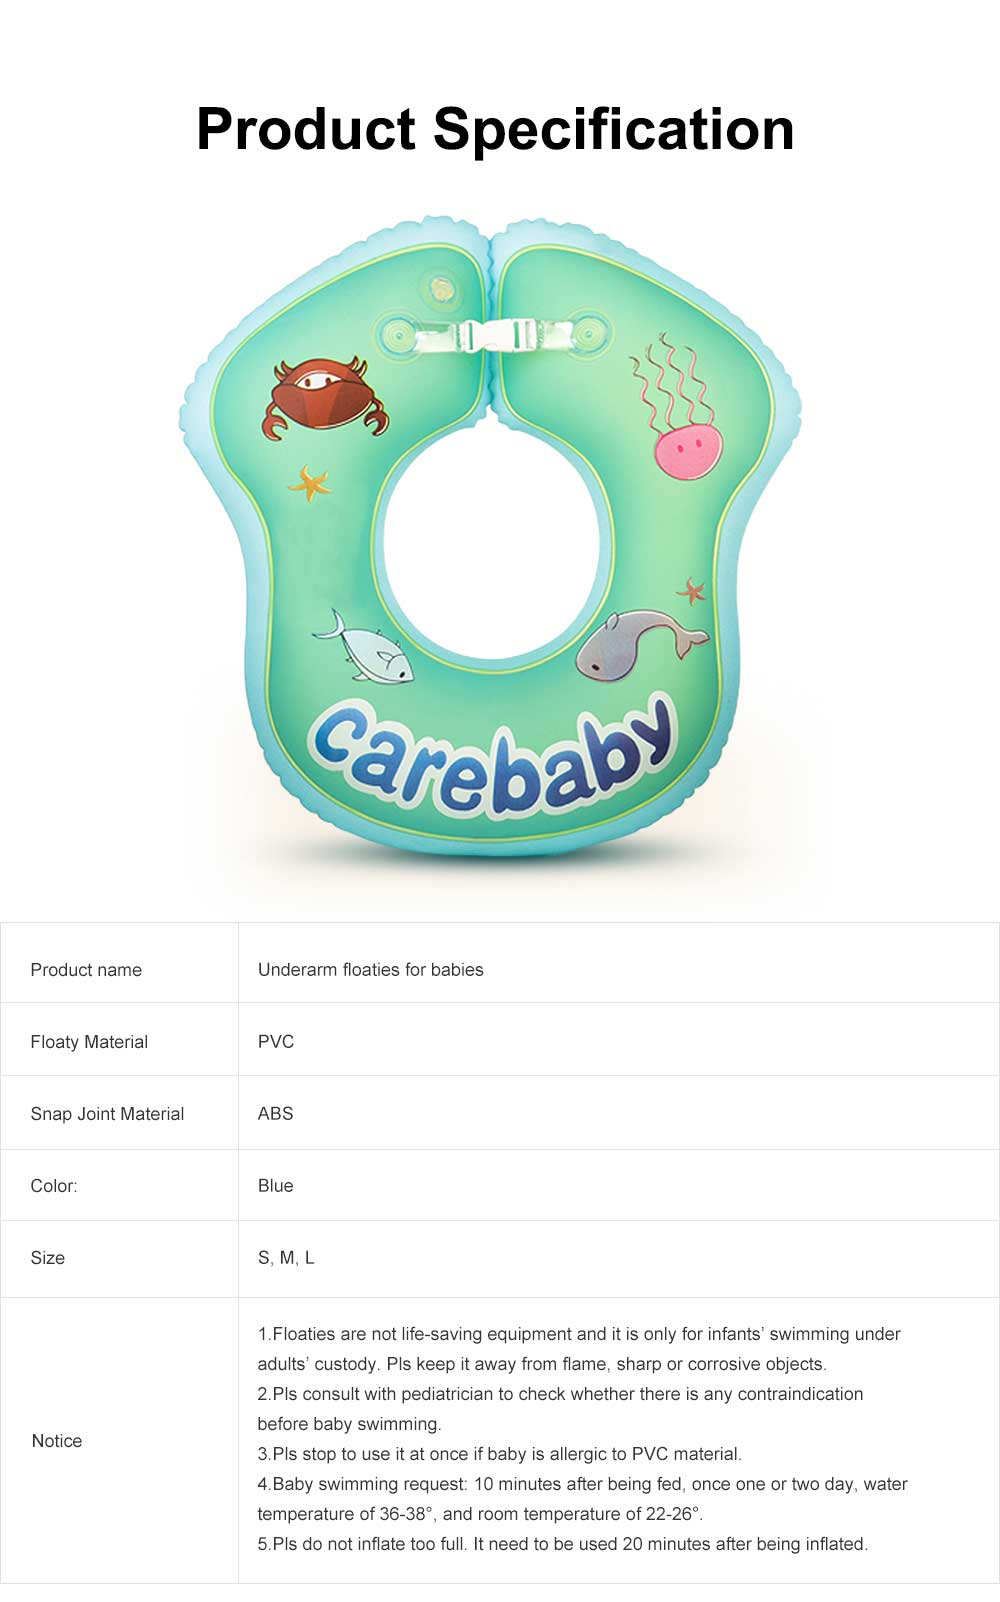 Children's Floating Ring Swim Ring for Baby Swimming, Baby Bathing,Underarm Swim Rings for Children 1 to 6 Years Infants, Newborns Sitting Thickened Floaties 6